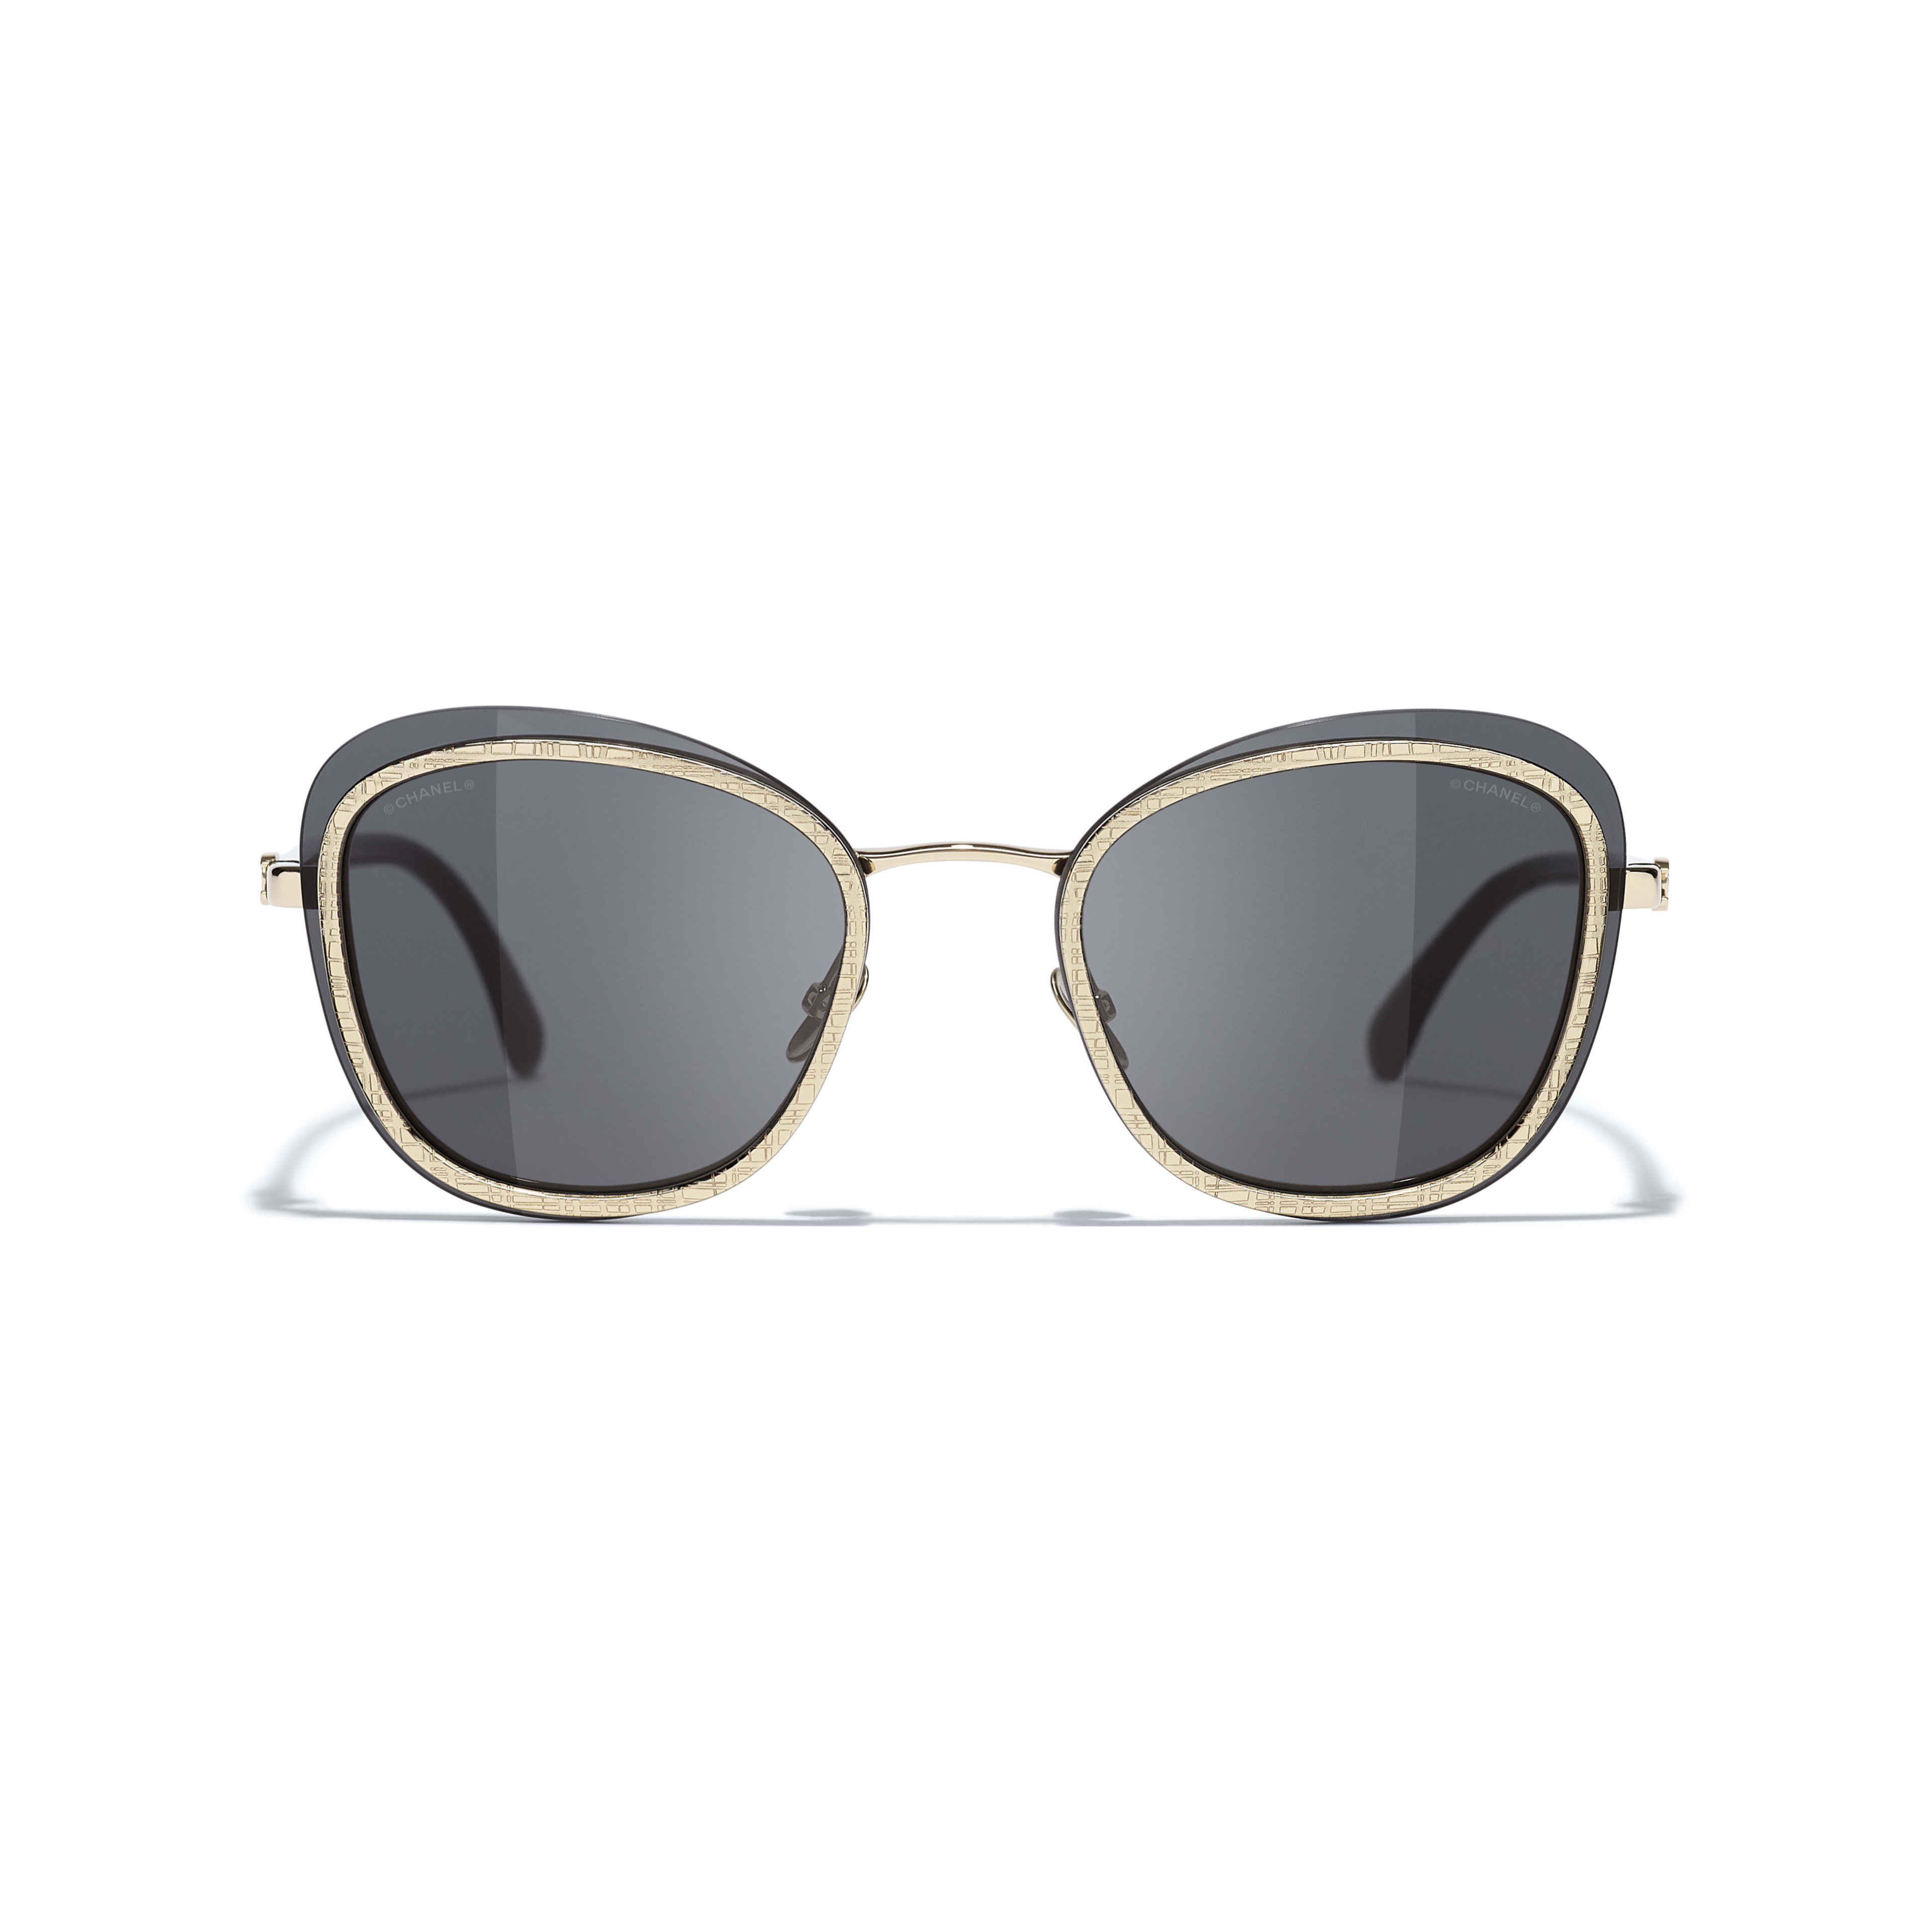 Pantos Sunglasses - Black & Gold - Acetate & Metal - CHANEL - Alternative view - see standard sized version